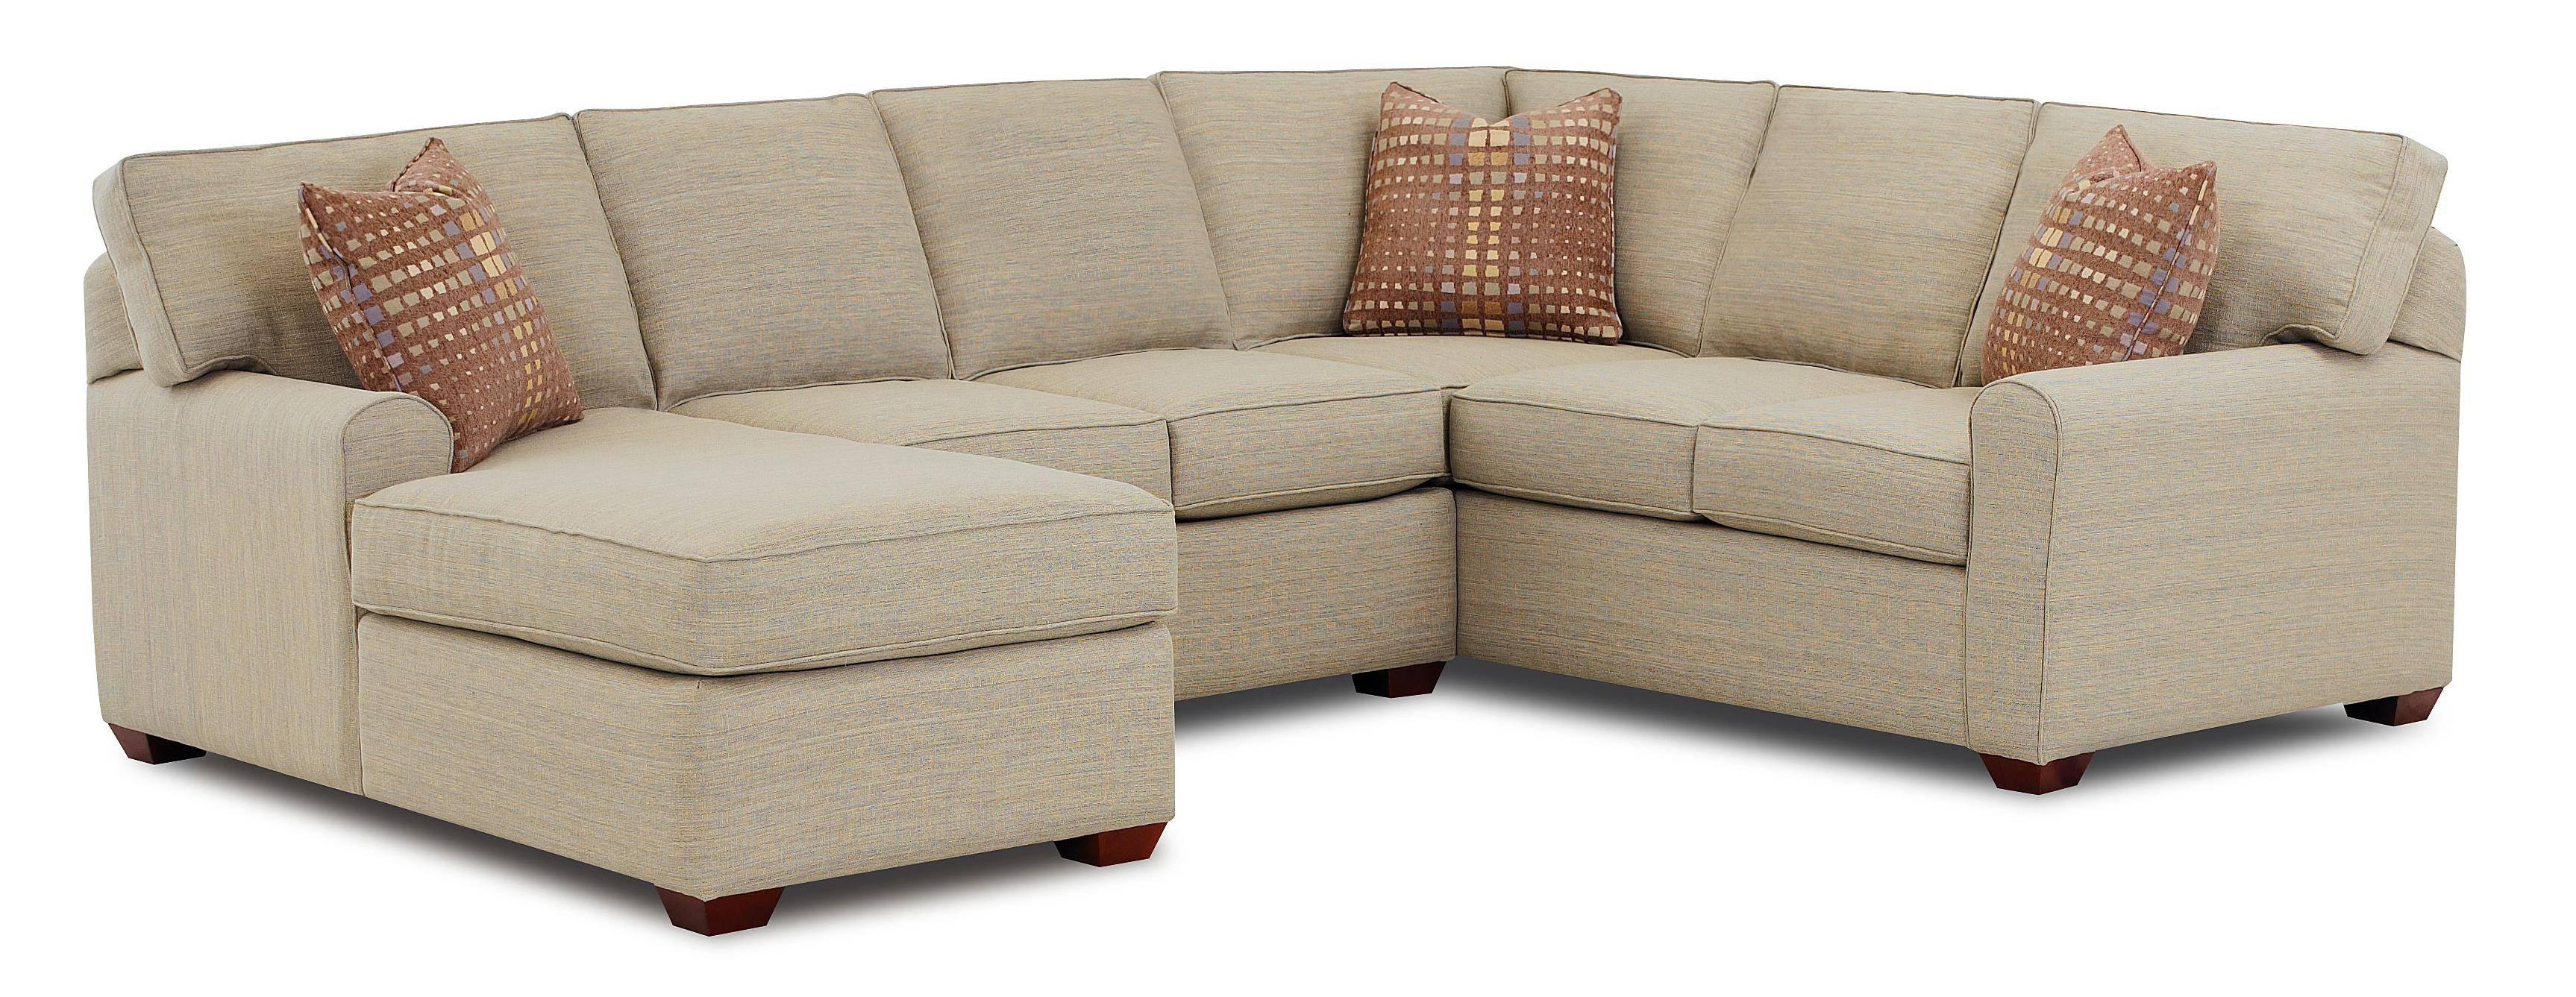 fabric chaise couches u leather sofa microfiber sectionals size new ashley lovely sofas top sectional tags kleine couch furniture ethan with cup full holders set broyhill extra best and beautiful gallery fabulous kautsch allen large of inspirational cheap grobania recliners ergebnis pictures tan